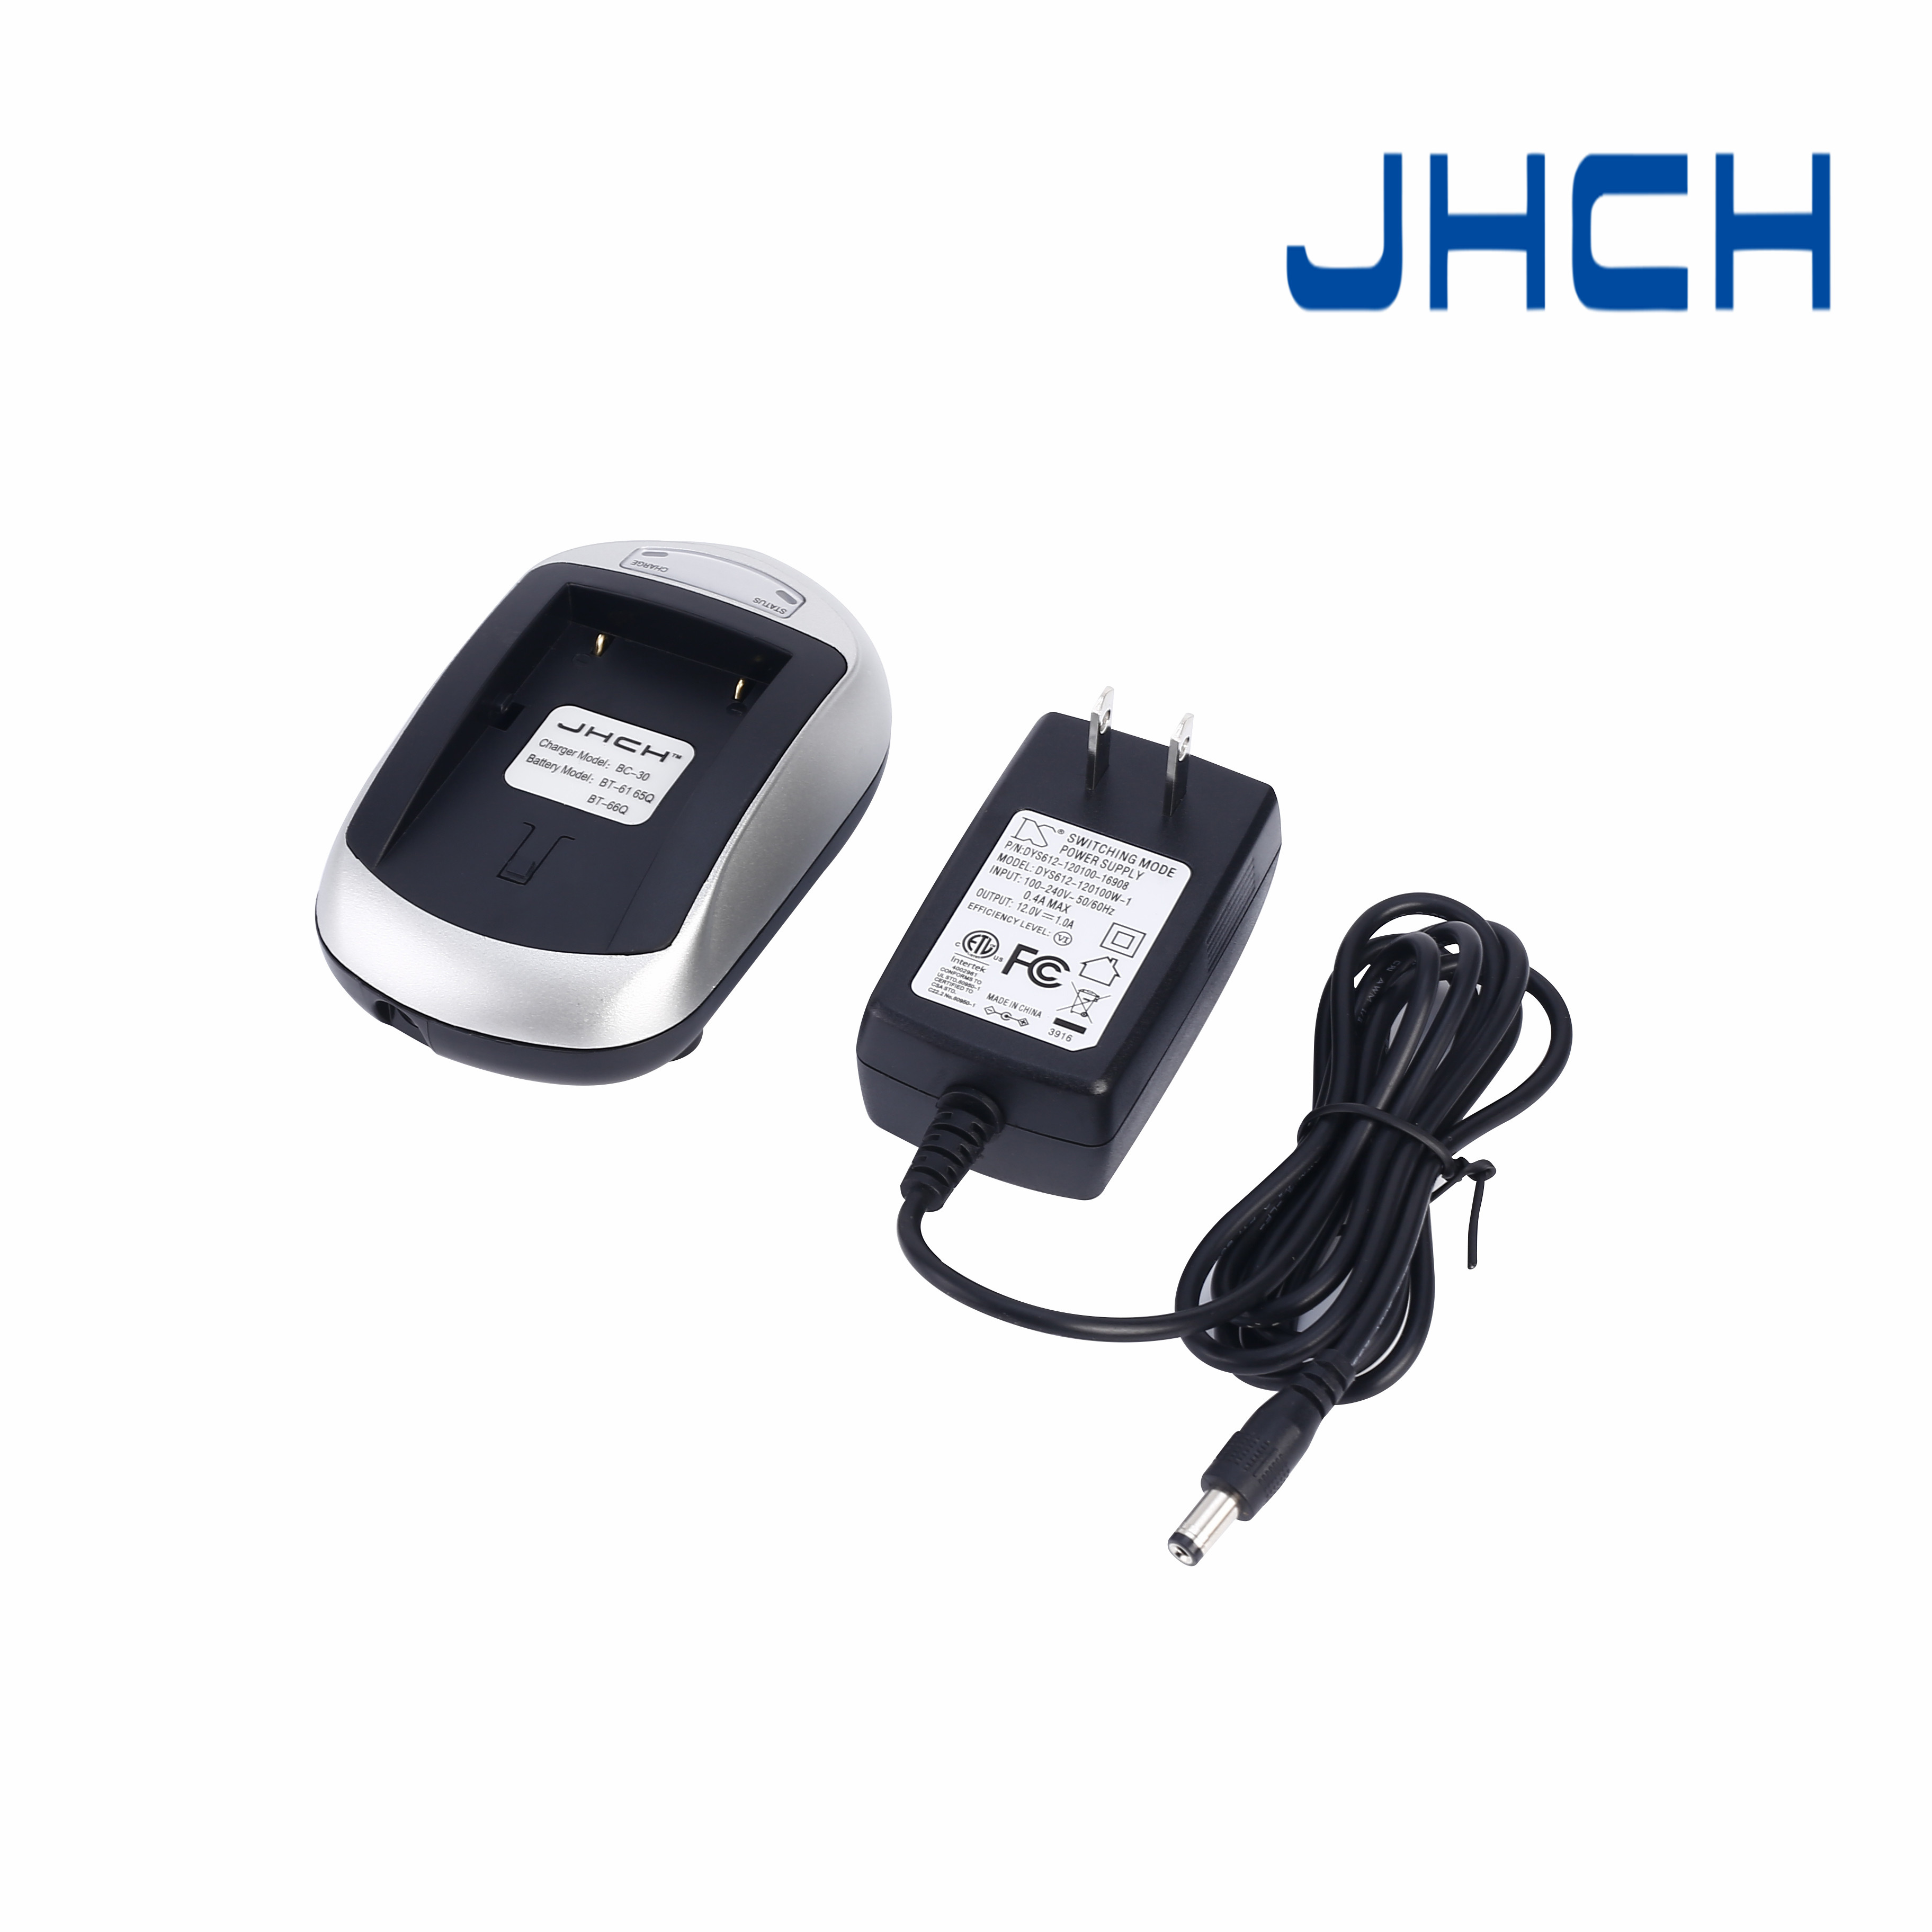 Compatible BC-30 single charger for Topcon GPS BT-65Q/66Q batetry